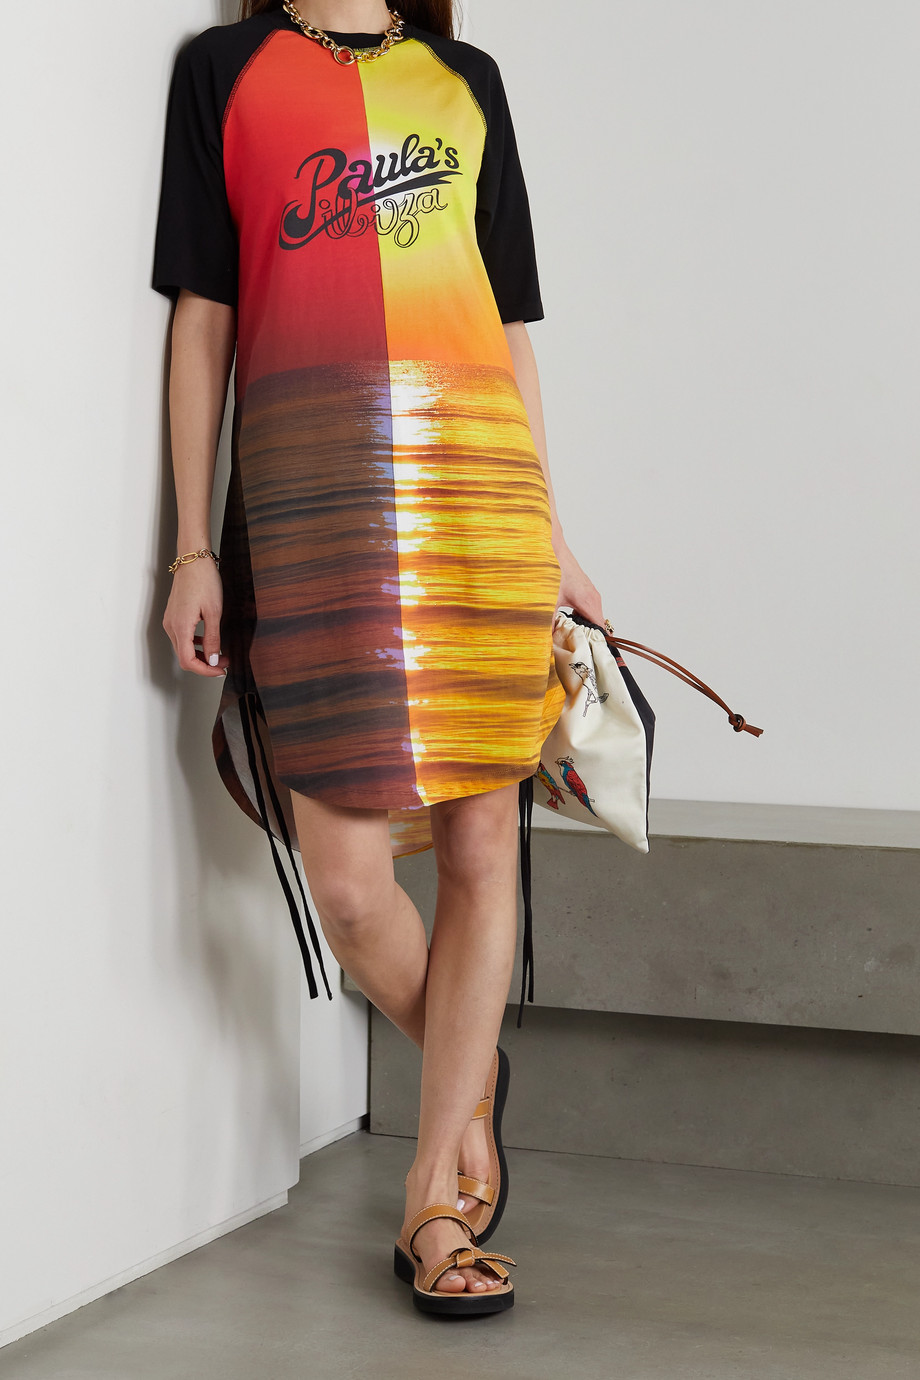 LOEWE + Paula's Ibiza Sunset ruched printed cotton-jersey dress